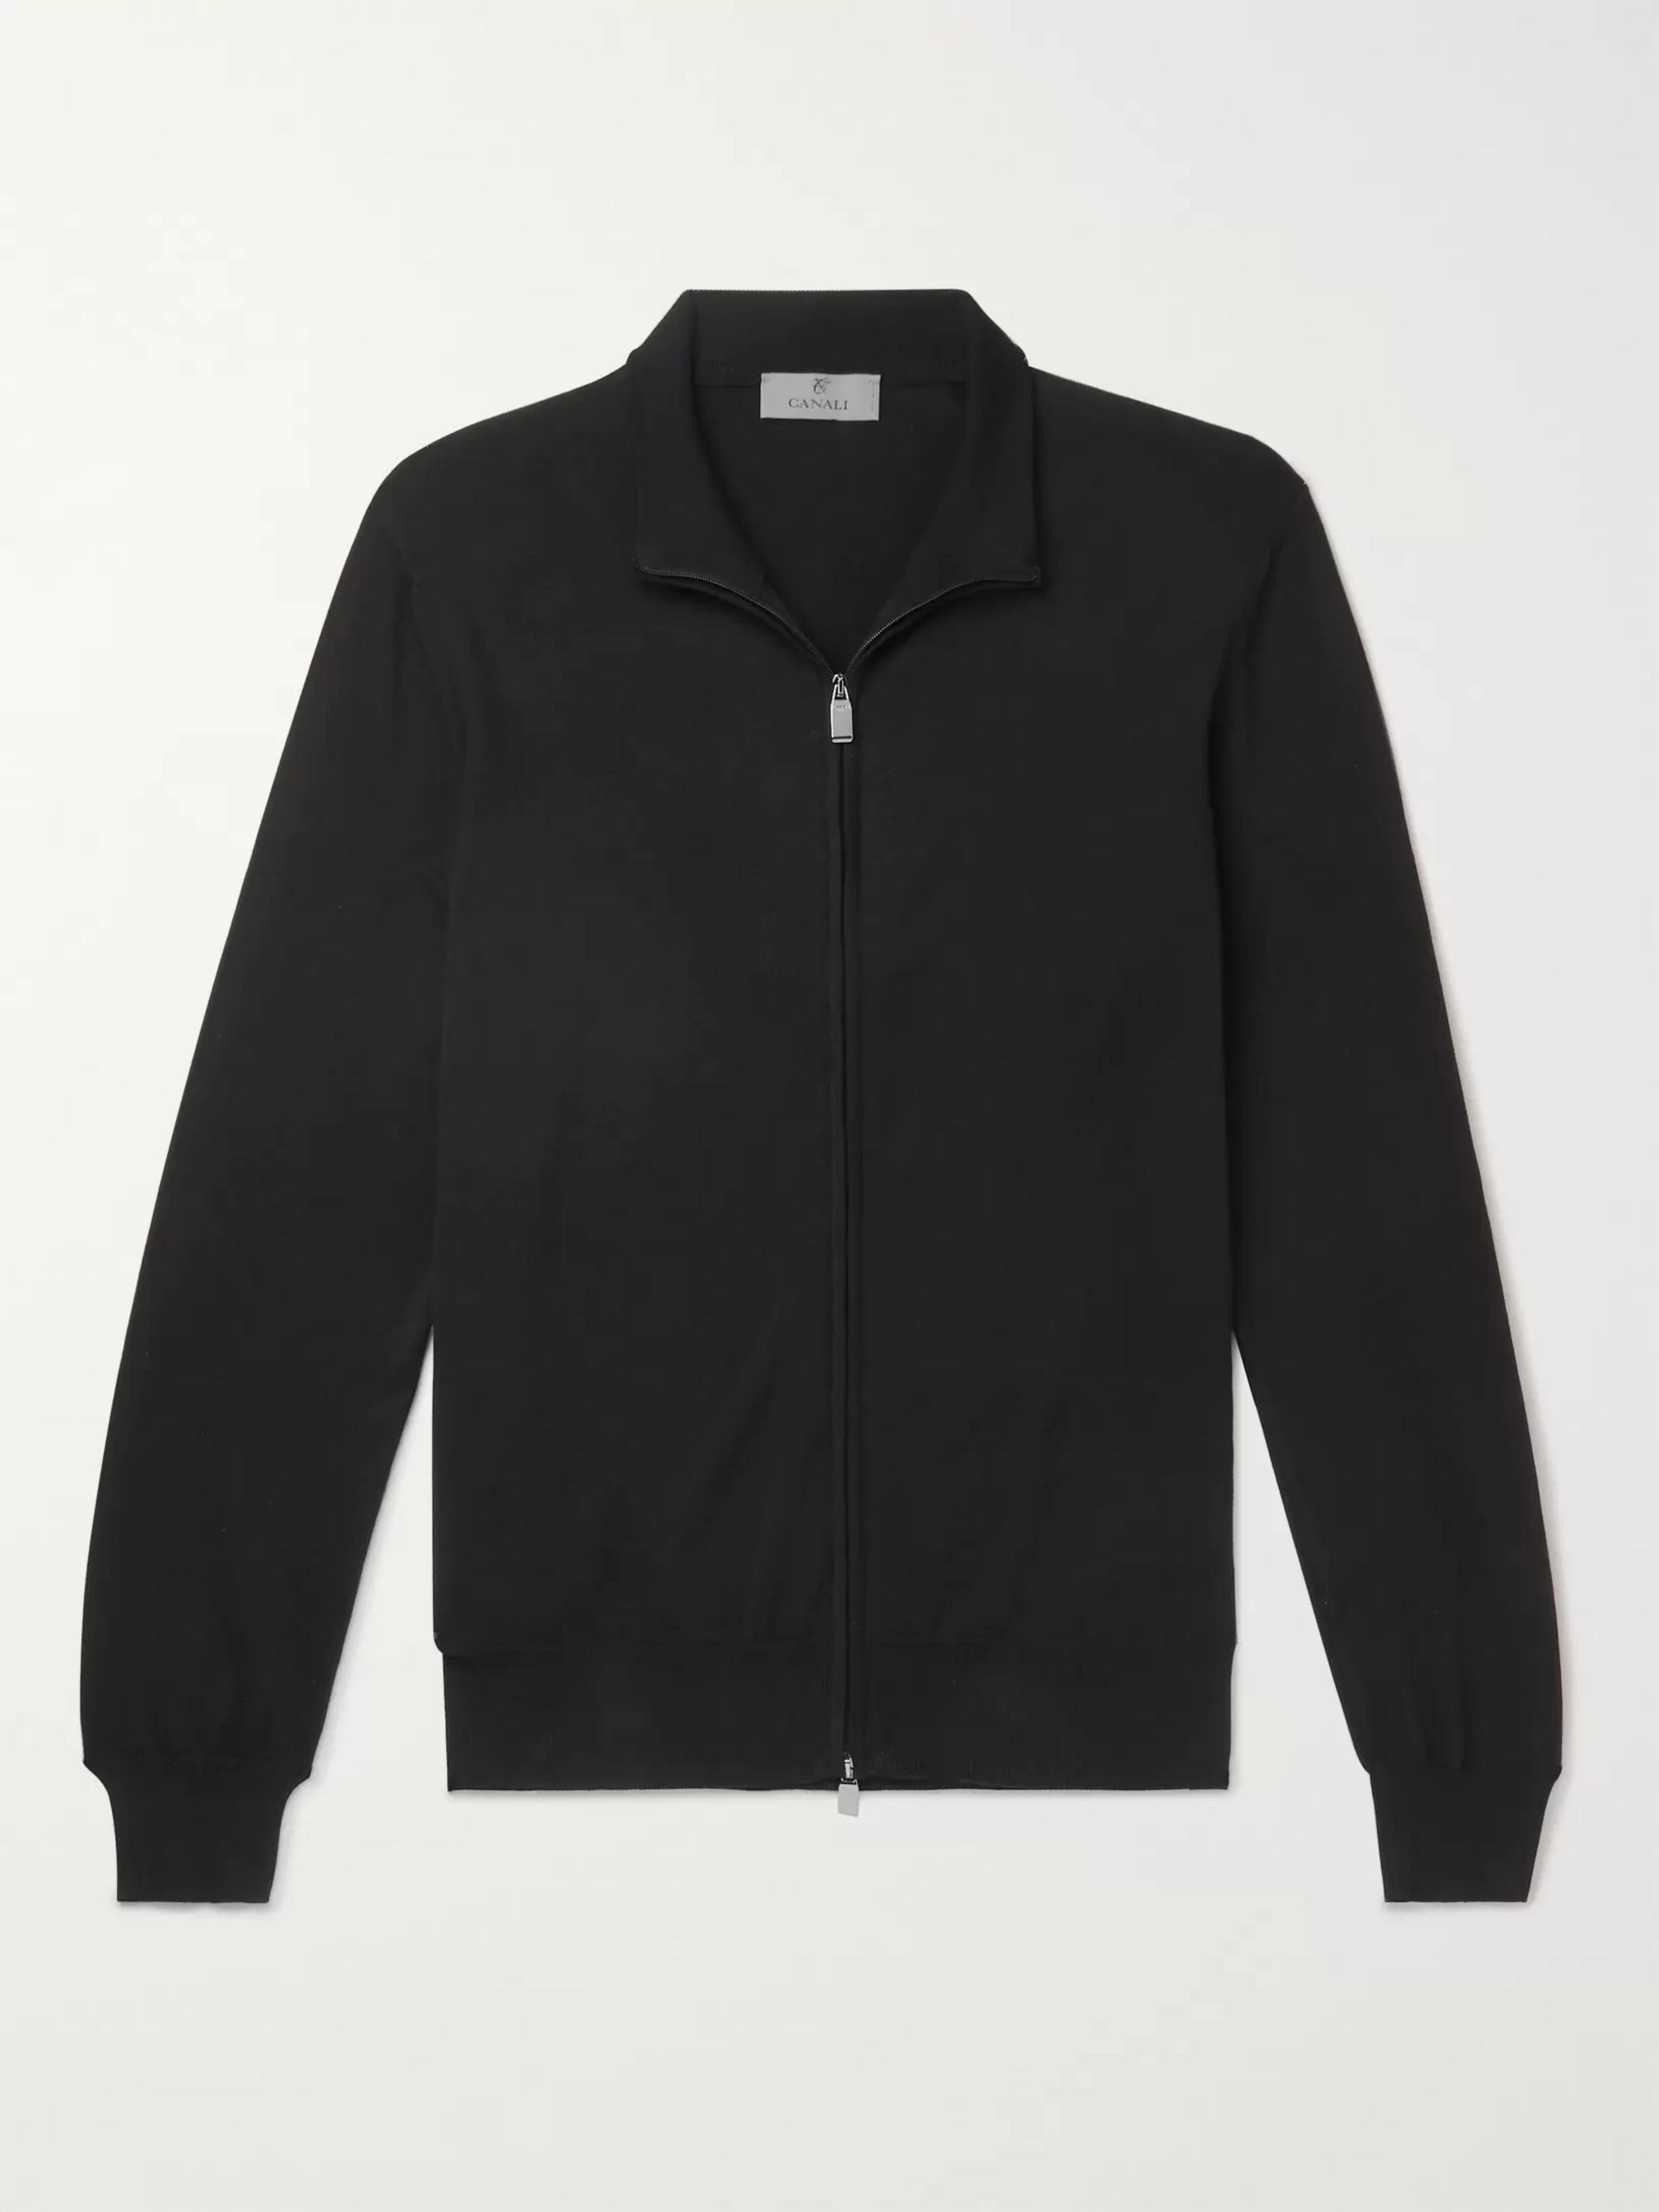 Canali Slim-Fit Cotton Zip-Up Cardigan